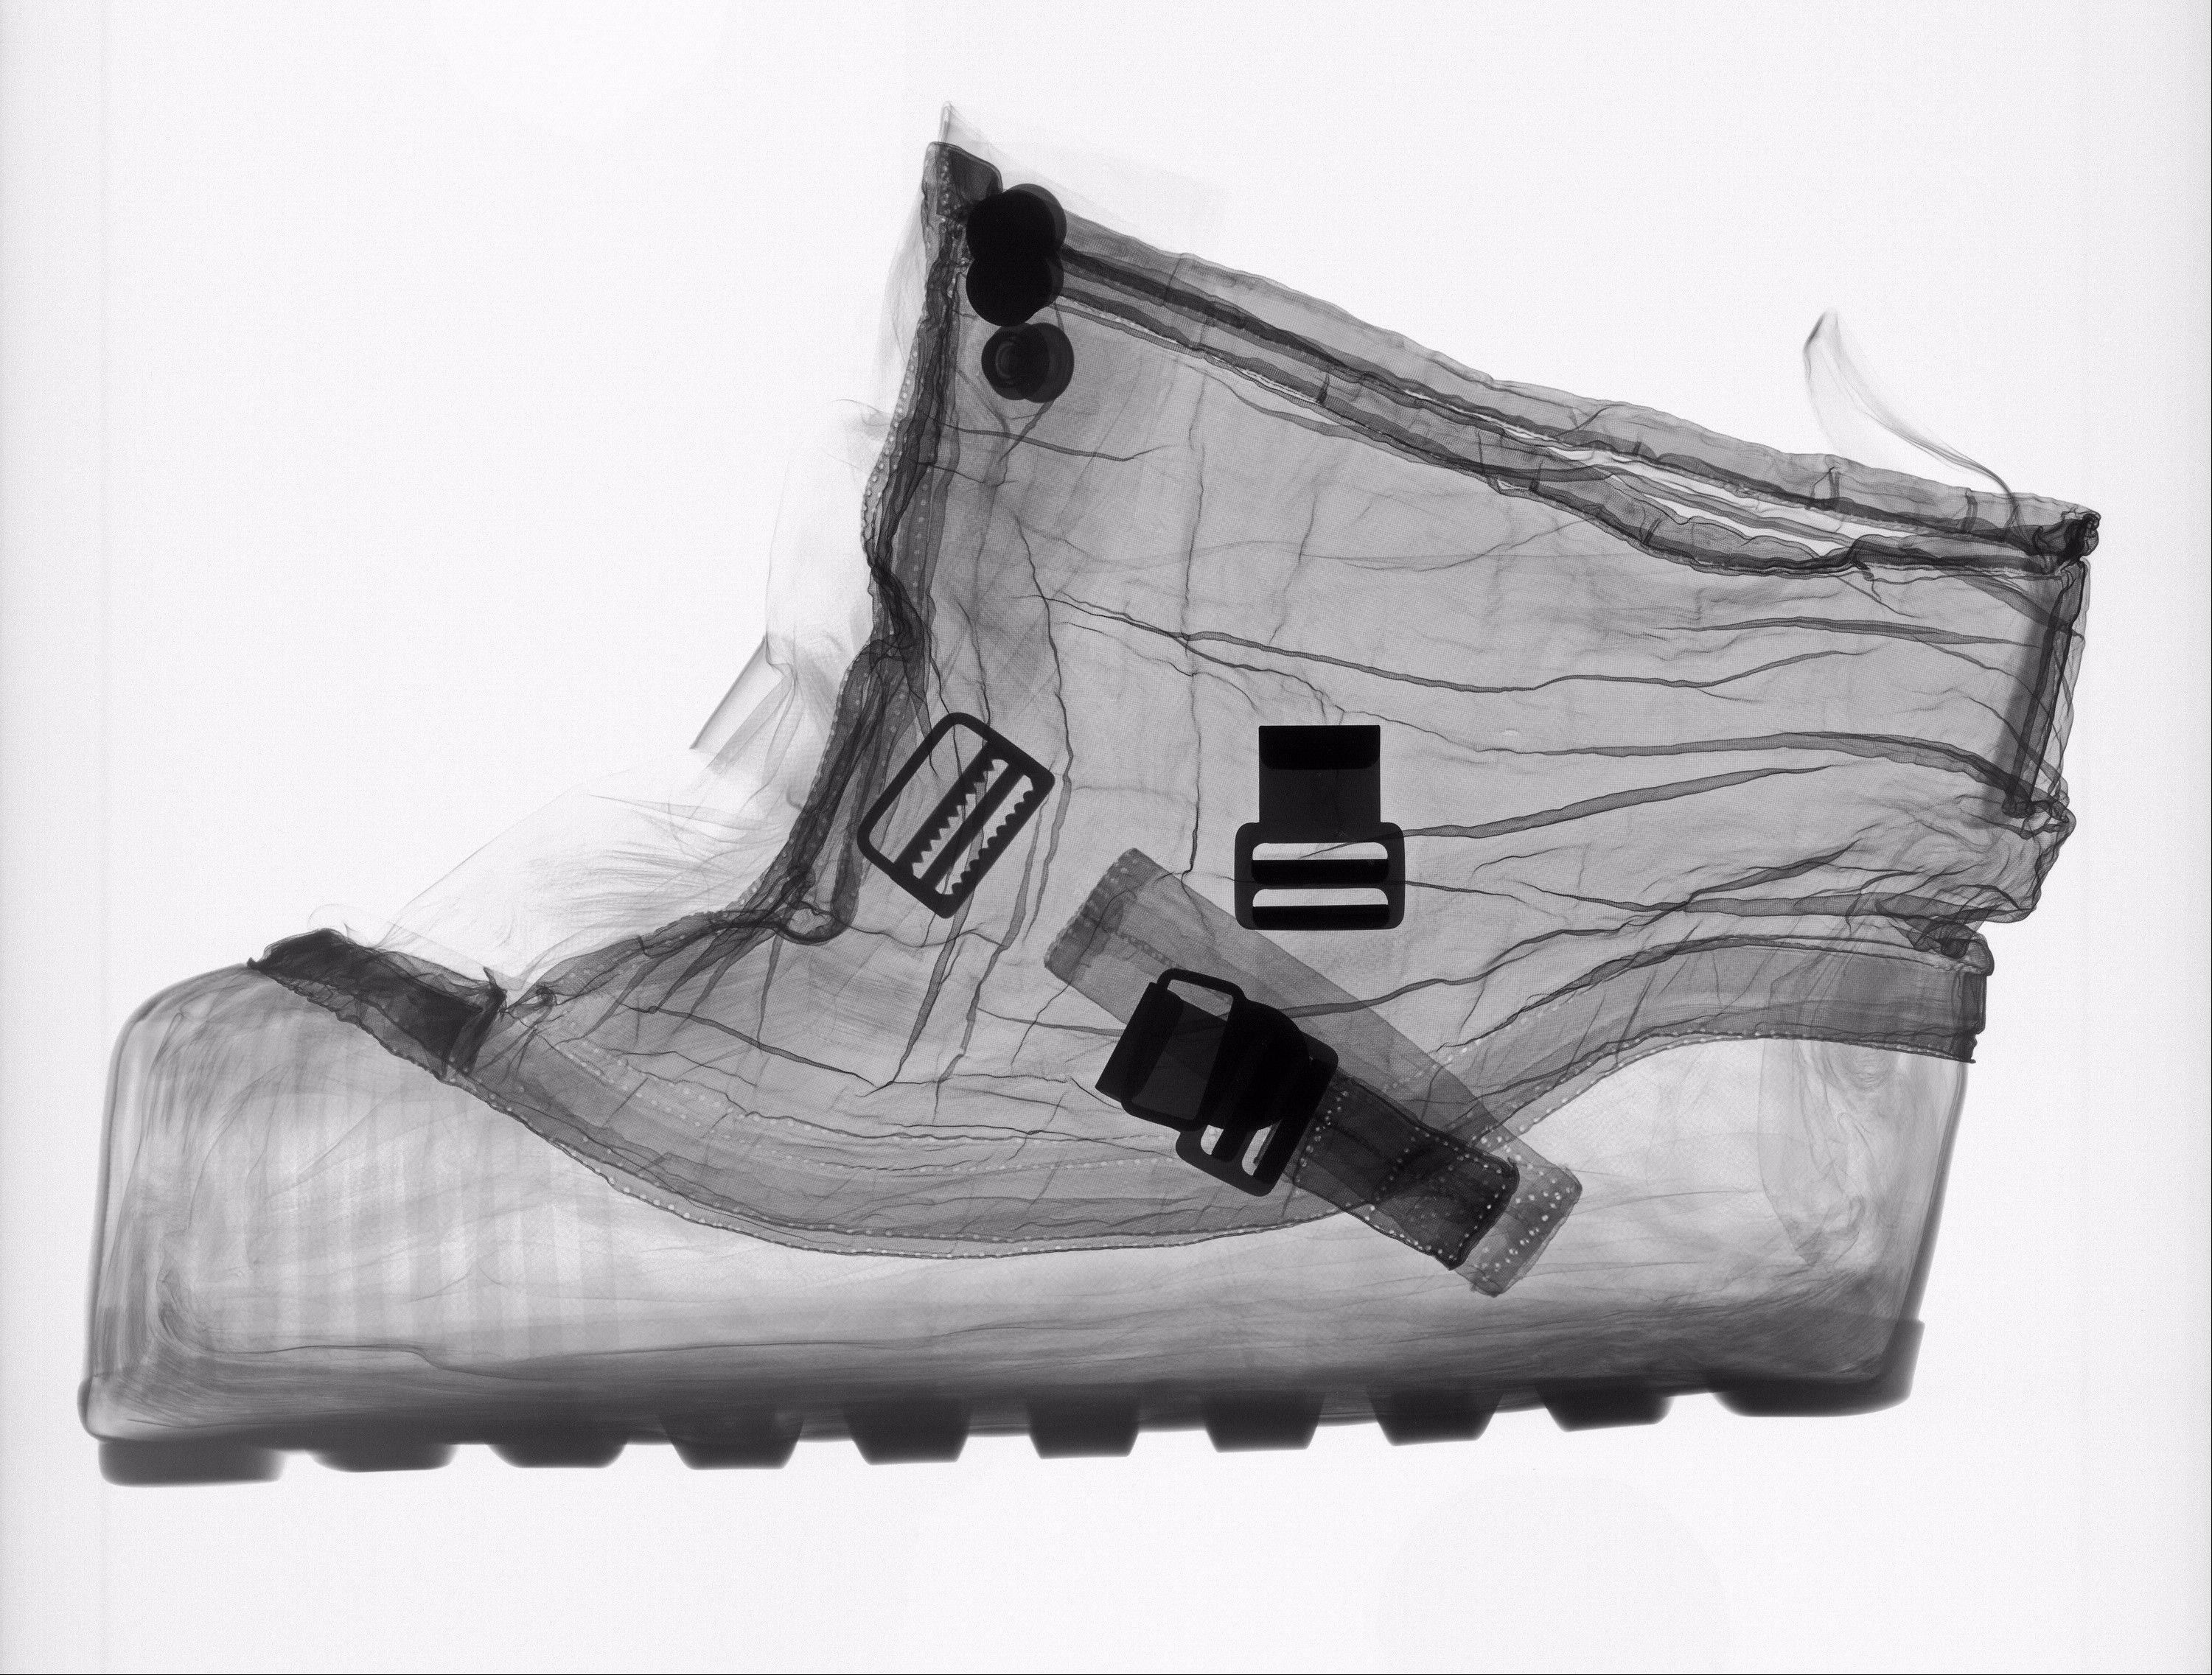 "This X-ray of an extravehicular (EV) overshoe that was designed to be worn over the Apollo spacesuit boots while an astronaut was walking on the Moon is part of a new art exhibit at the museum entitled: ""Suited for Space,""opening Friday at the Smithsonian National Air and Space Museum."